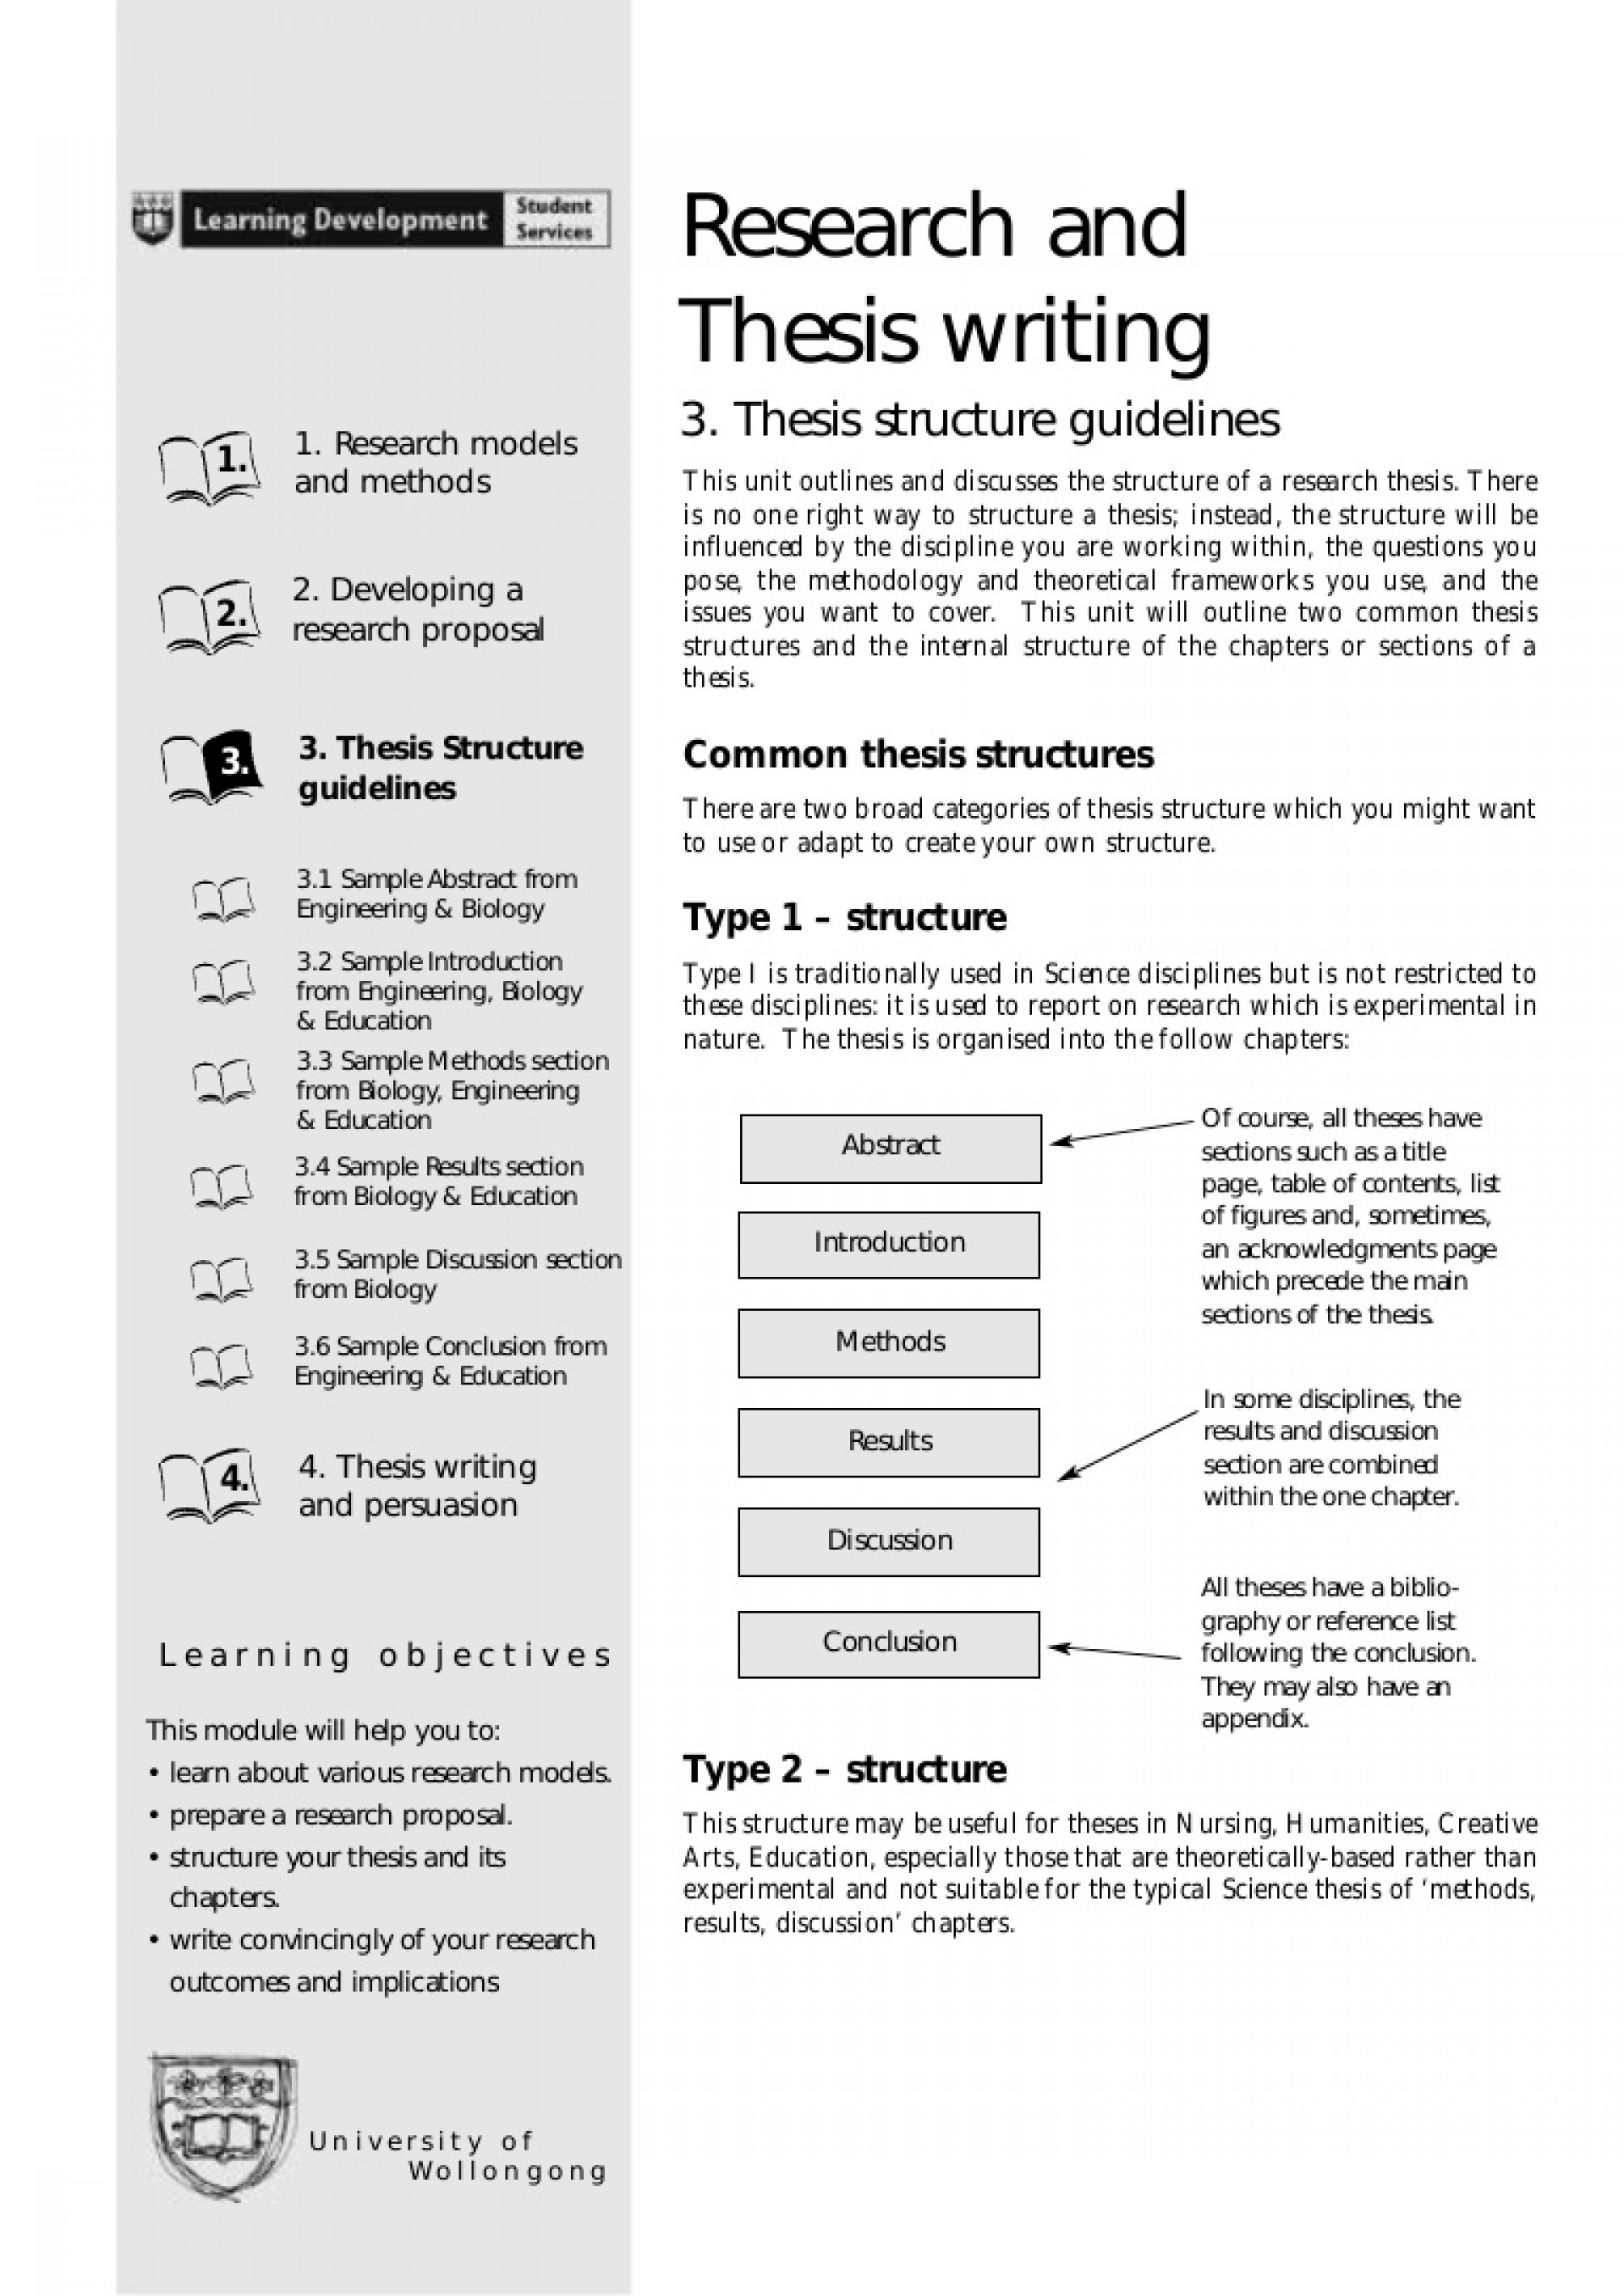 002 How To Write References In Research Paper Slideshare Researchtheseswriting Phpapp01 Thumbnail Excellent 1920